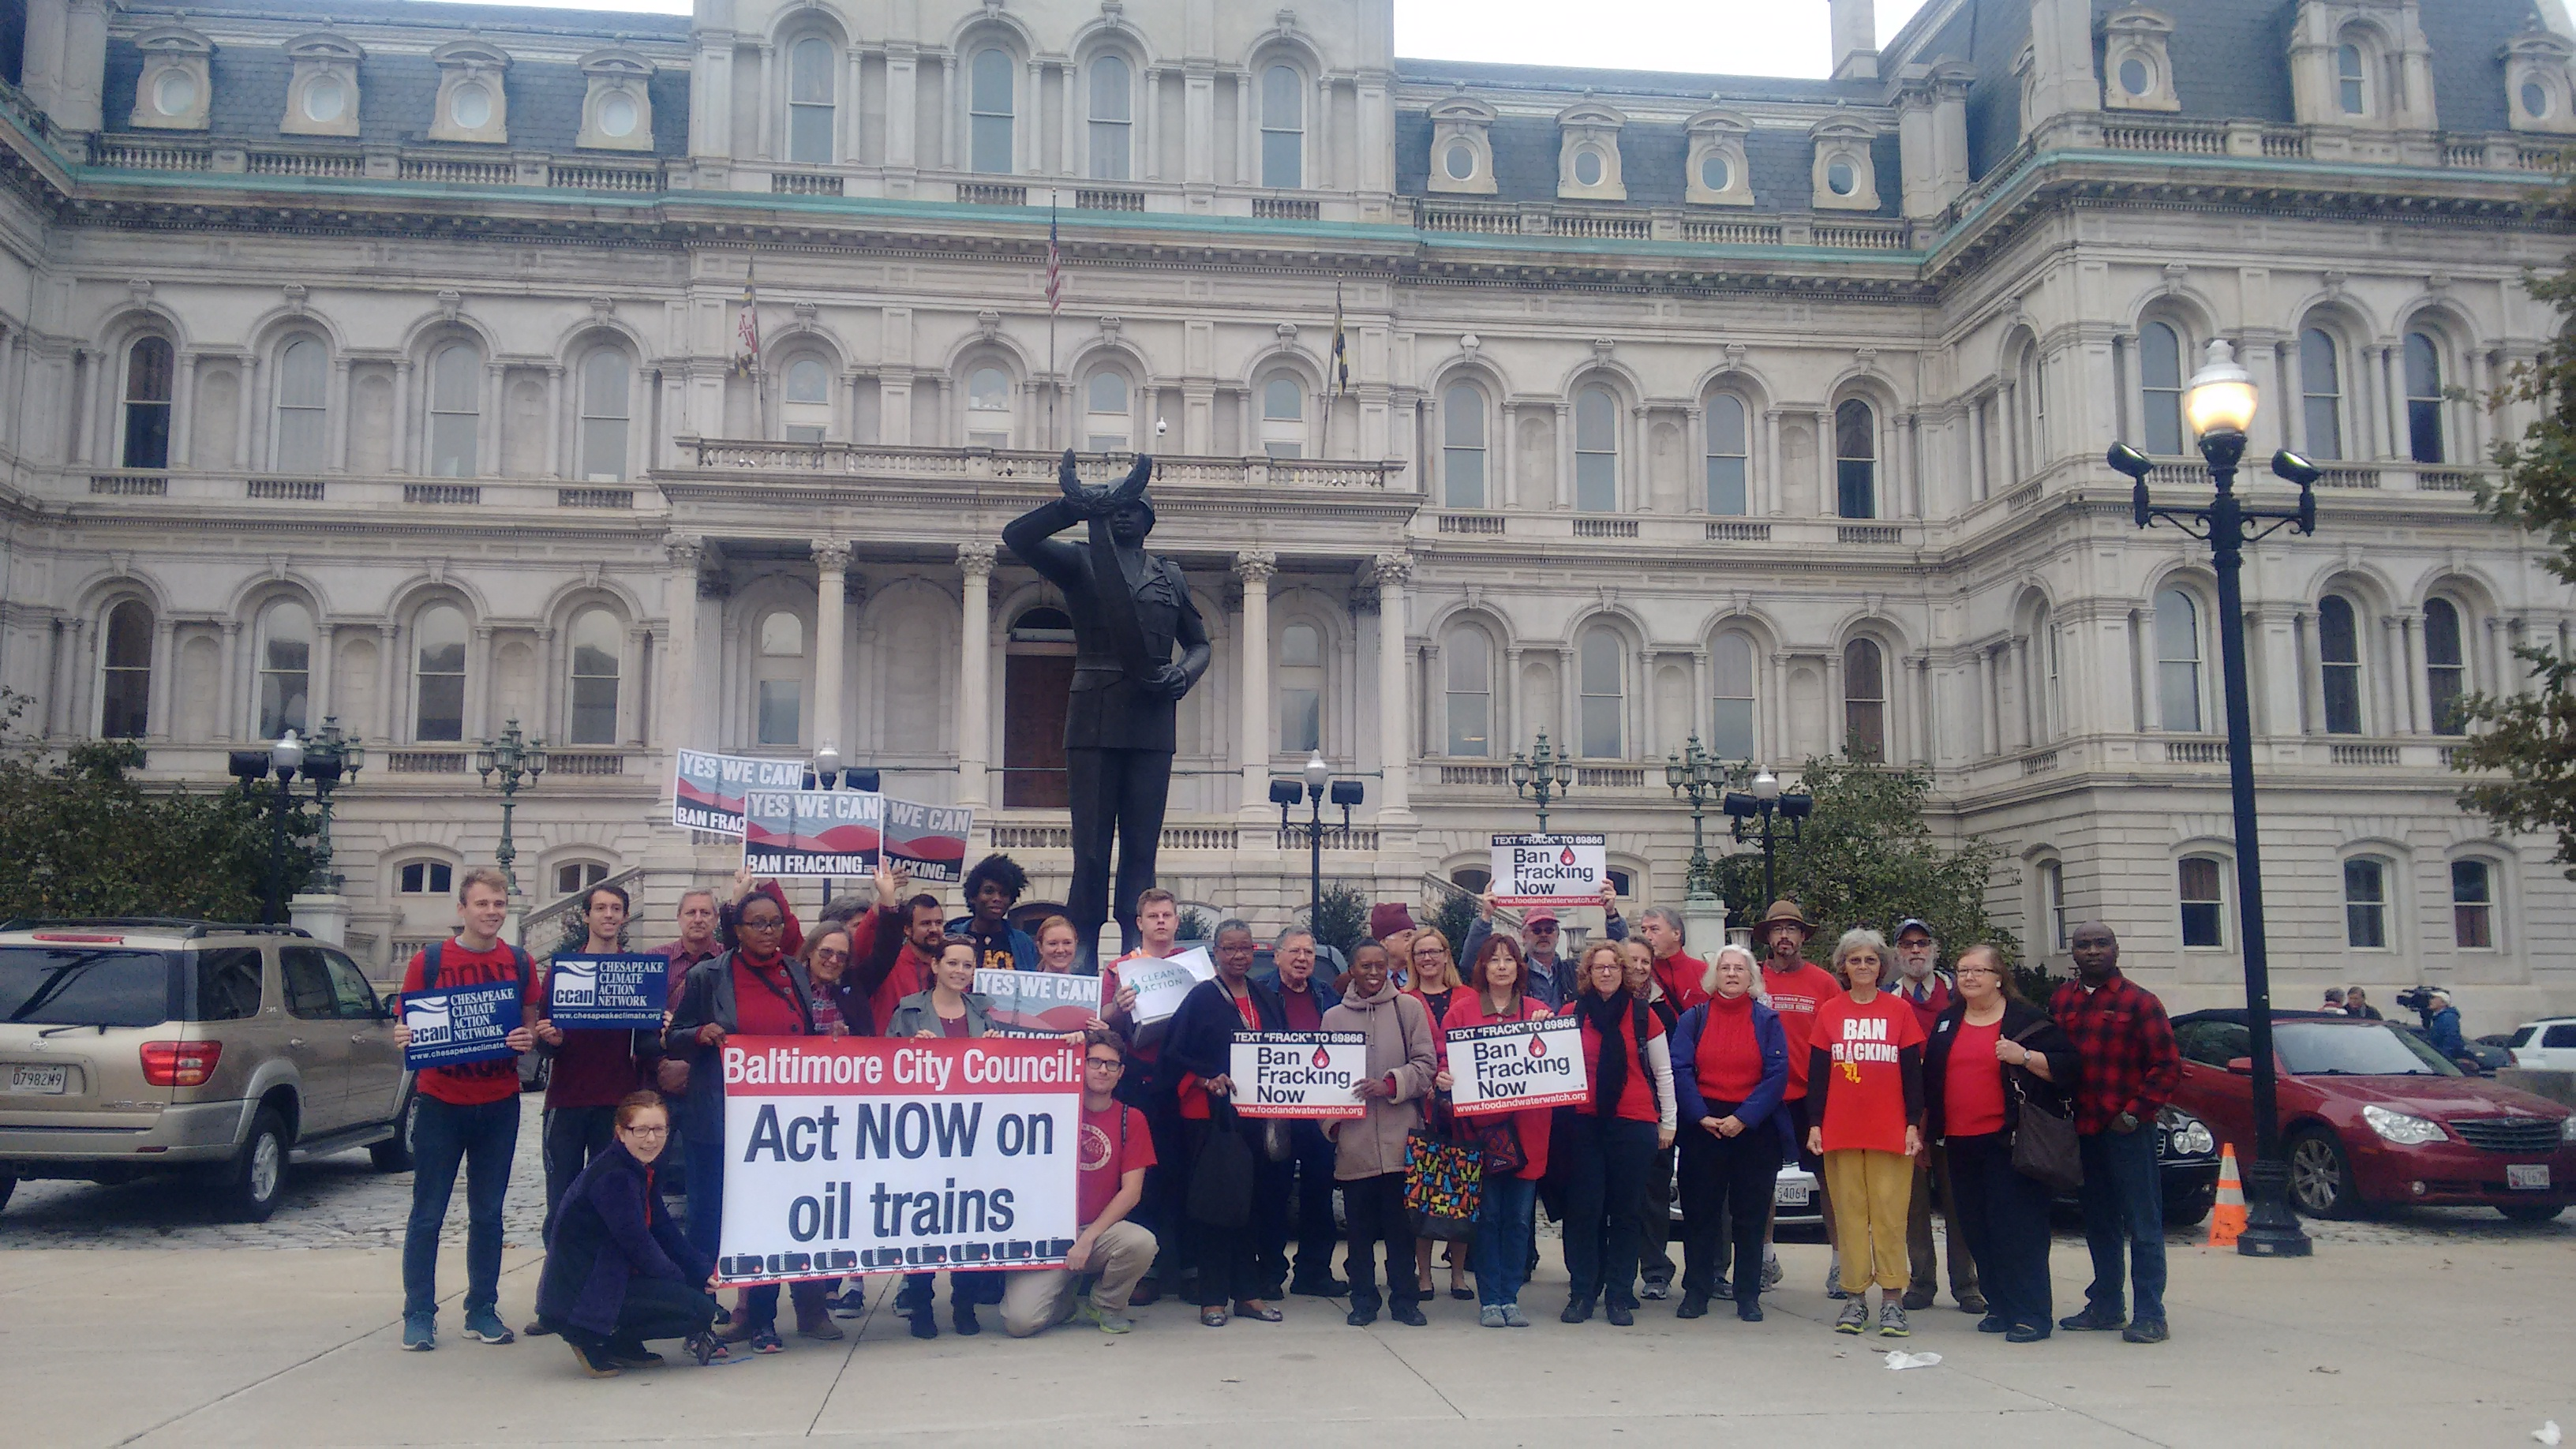 Over 30 Baltimore residents outside of City Hall wearing red in support of the Oil Trains Ordinance and the Fracking Ban